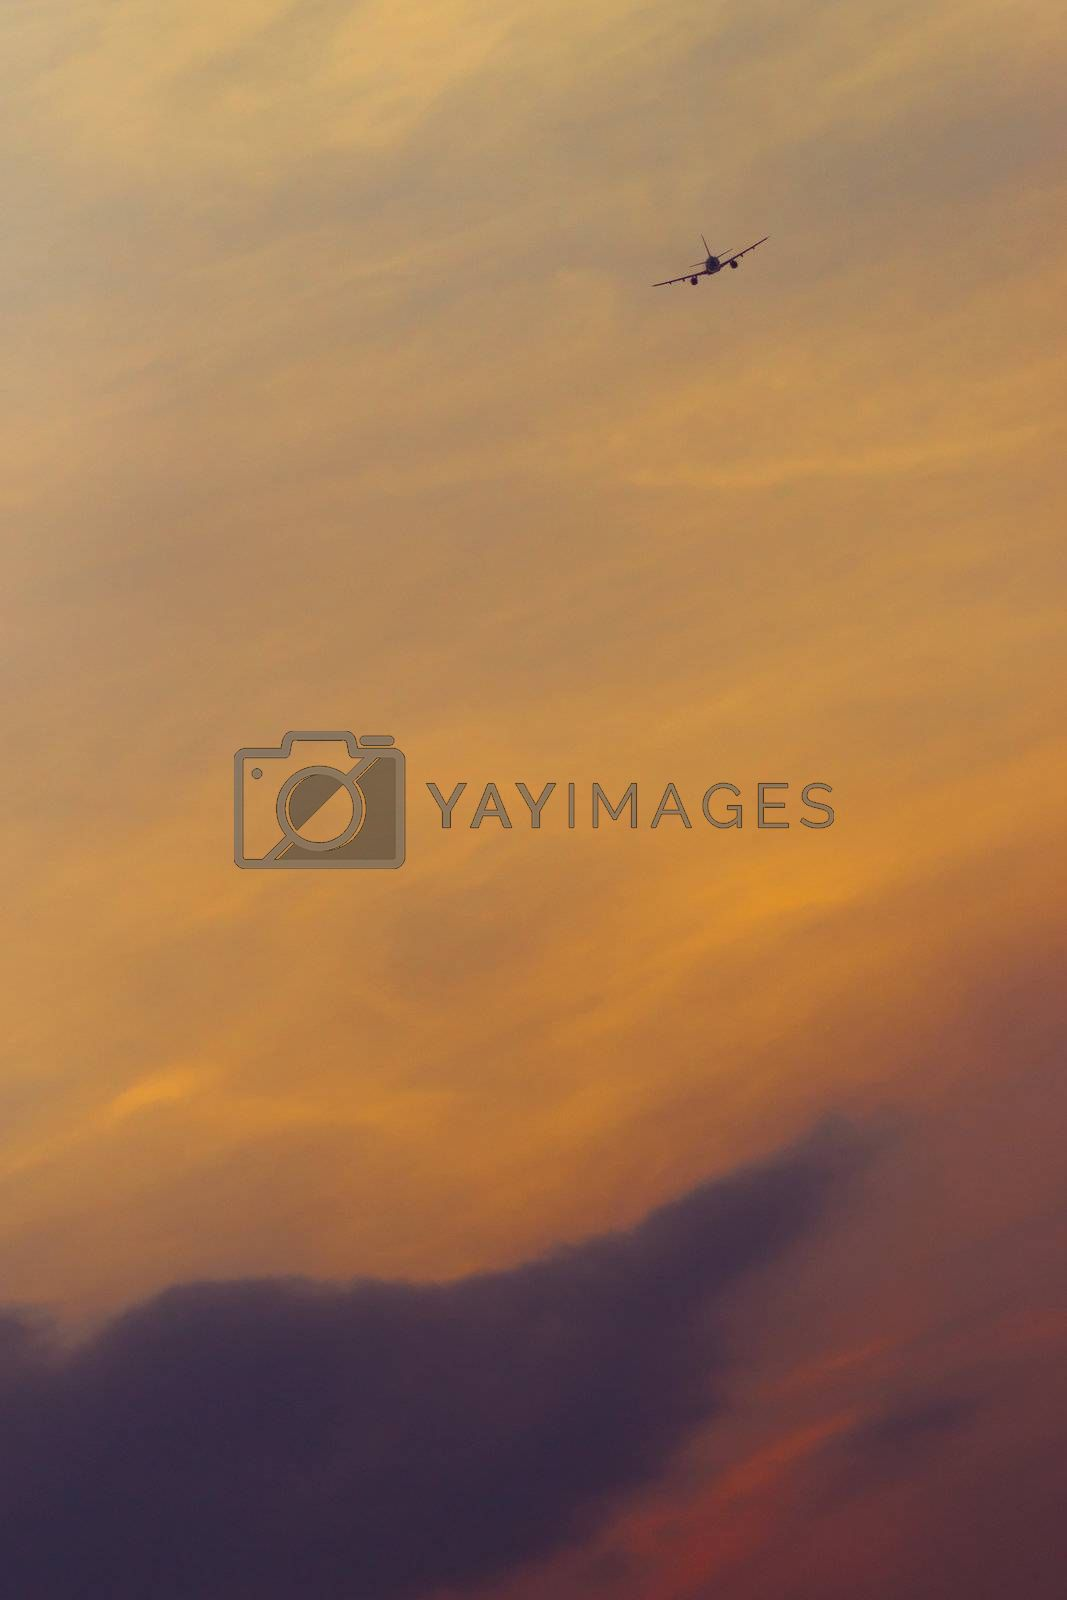 Airplane flying to the sunset sky